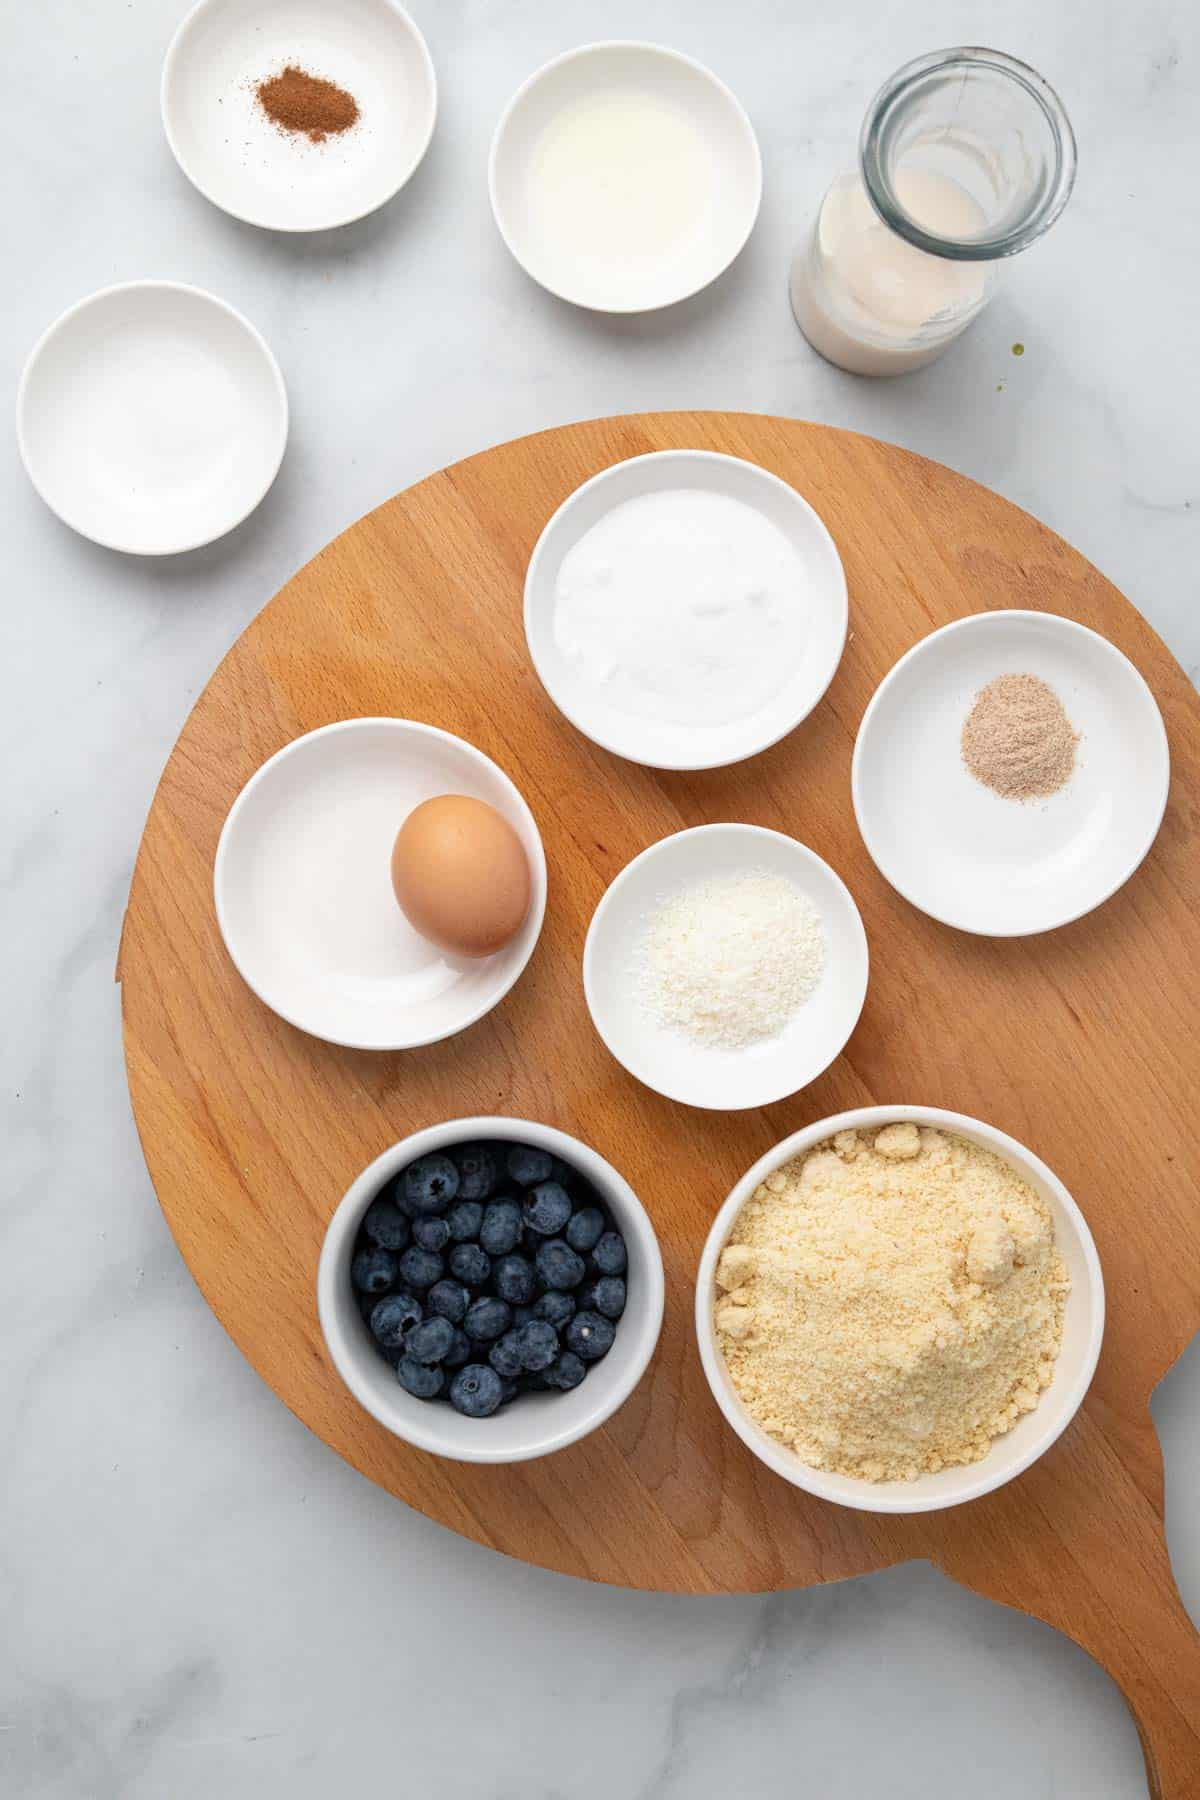 Ingredients separated into ramekins and dishes, as seen from above